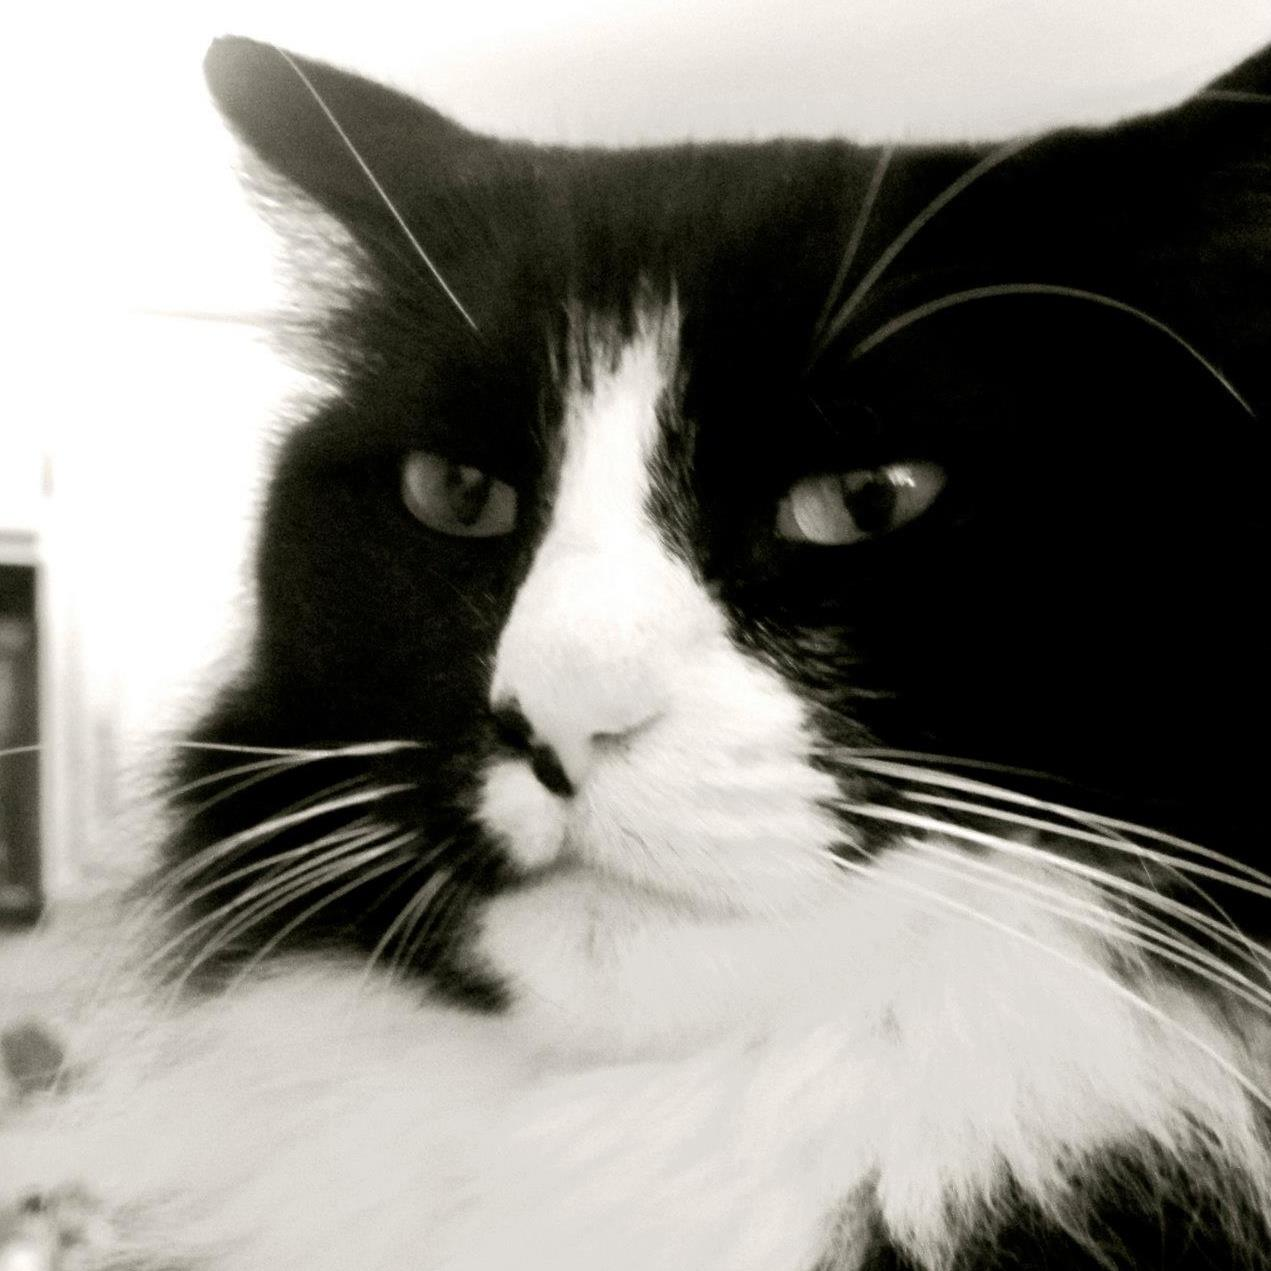 Internet cats, in their own words: Henri le Chat Noir